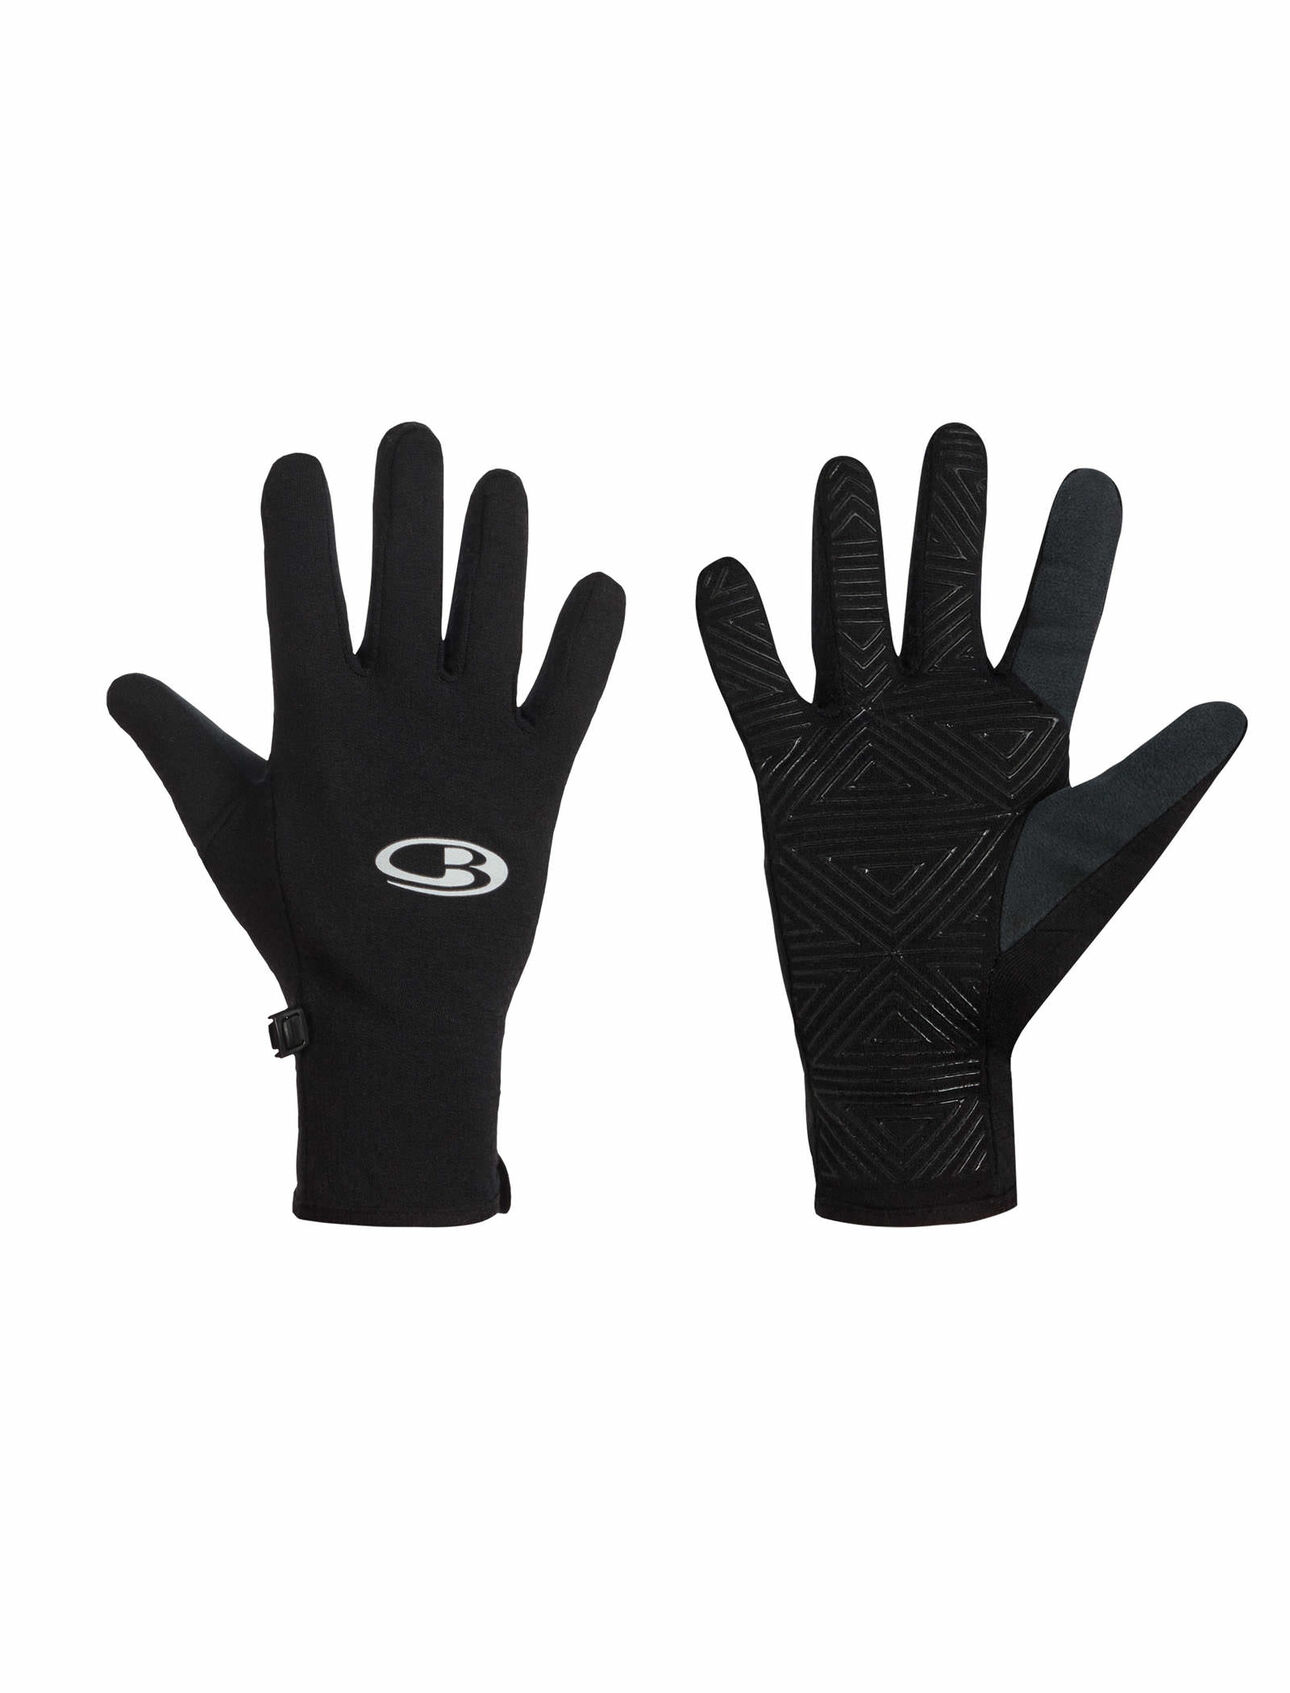 Driving gloves auckland - Images Quantum Gloves